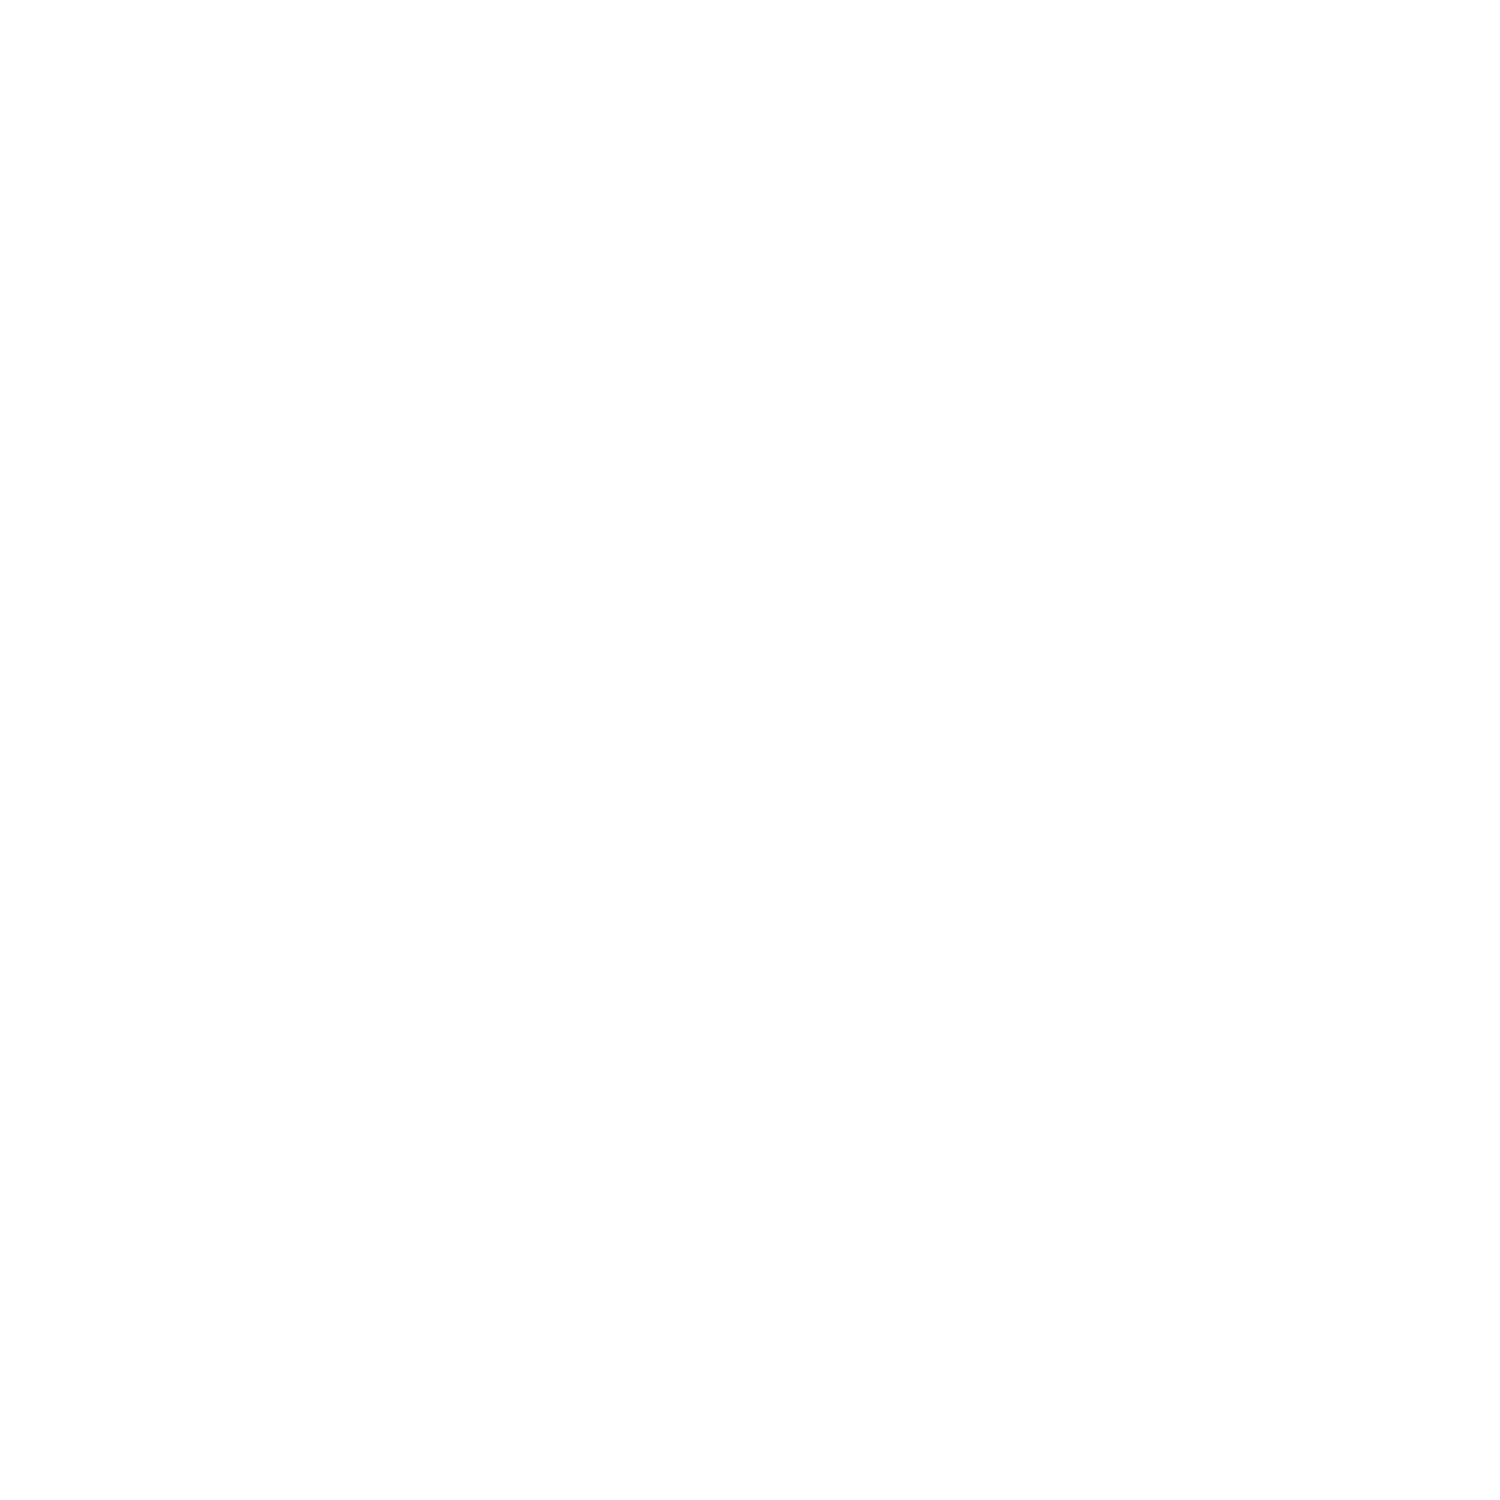 Bubbly Tea House